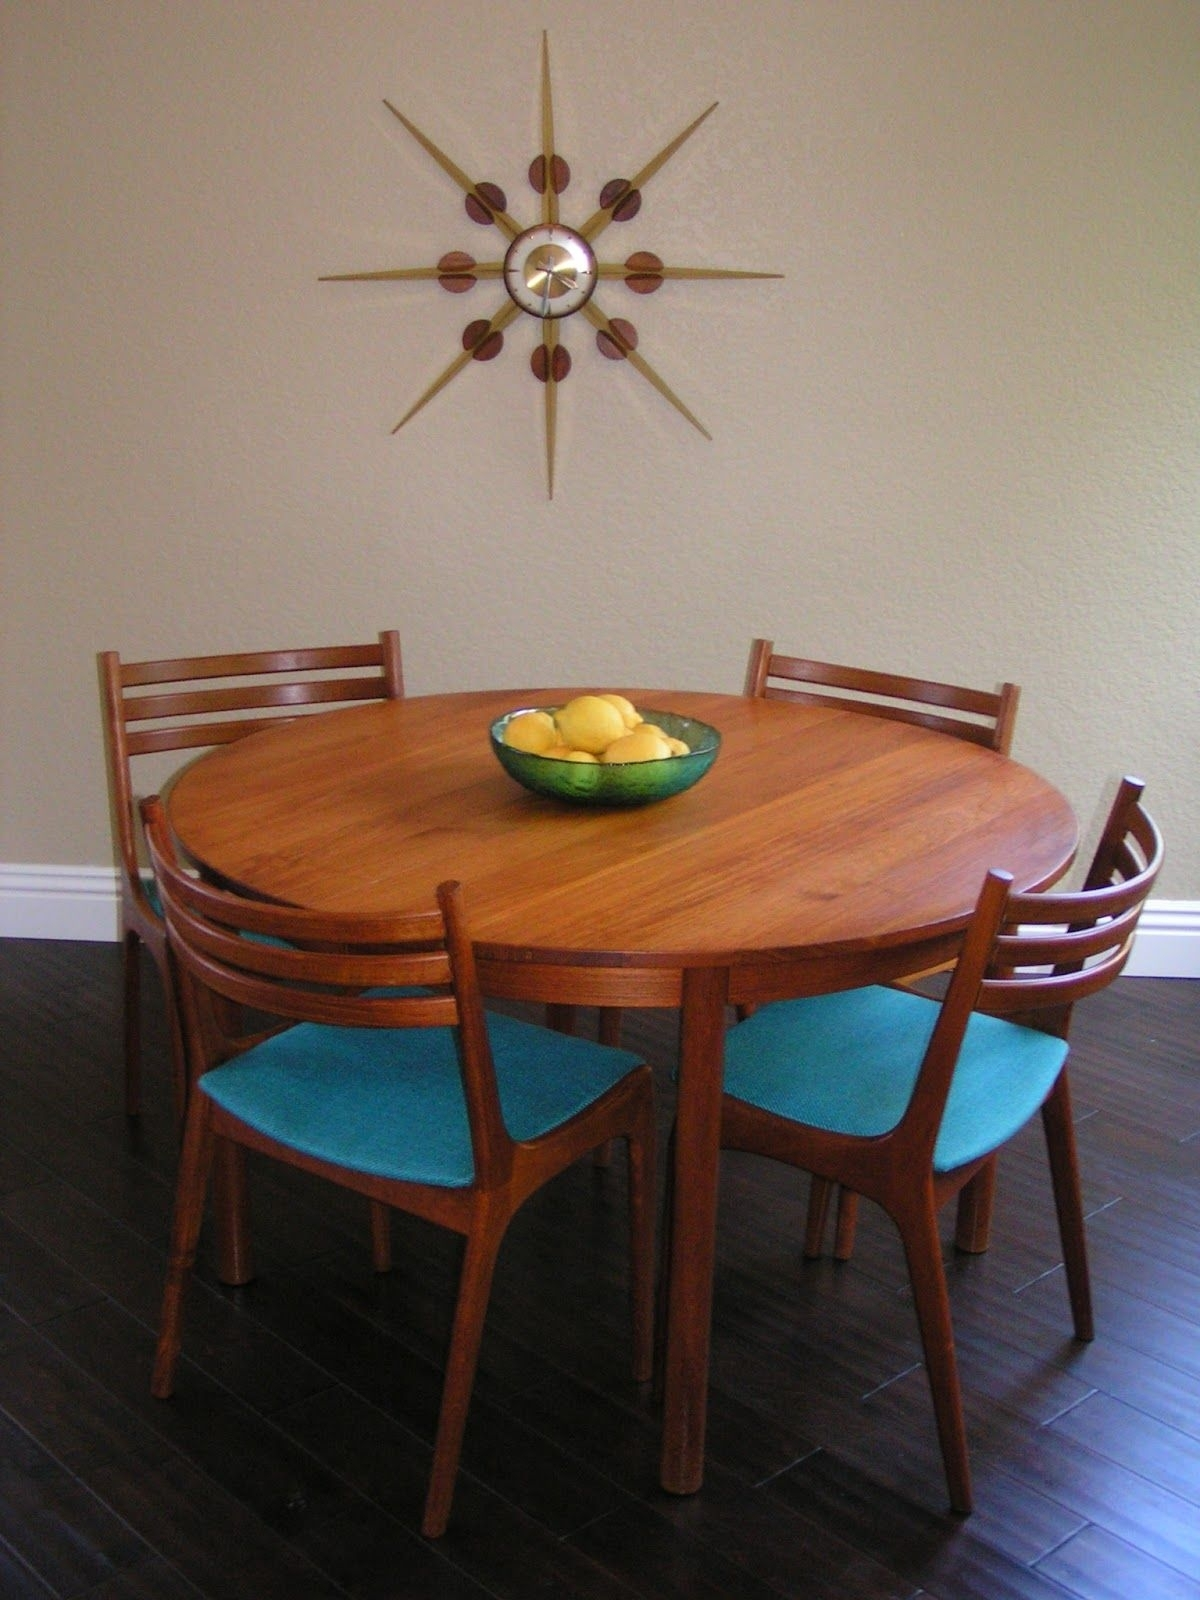 Sleek And Simple Lines: Vintage Danish Teak Round Dining Table, Six Throughout Newest Wyatt 7 Piece Dining Sets With Celler Teal Chairs (Image 15 of 20)